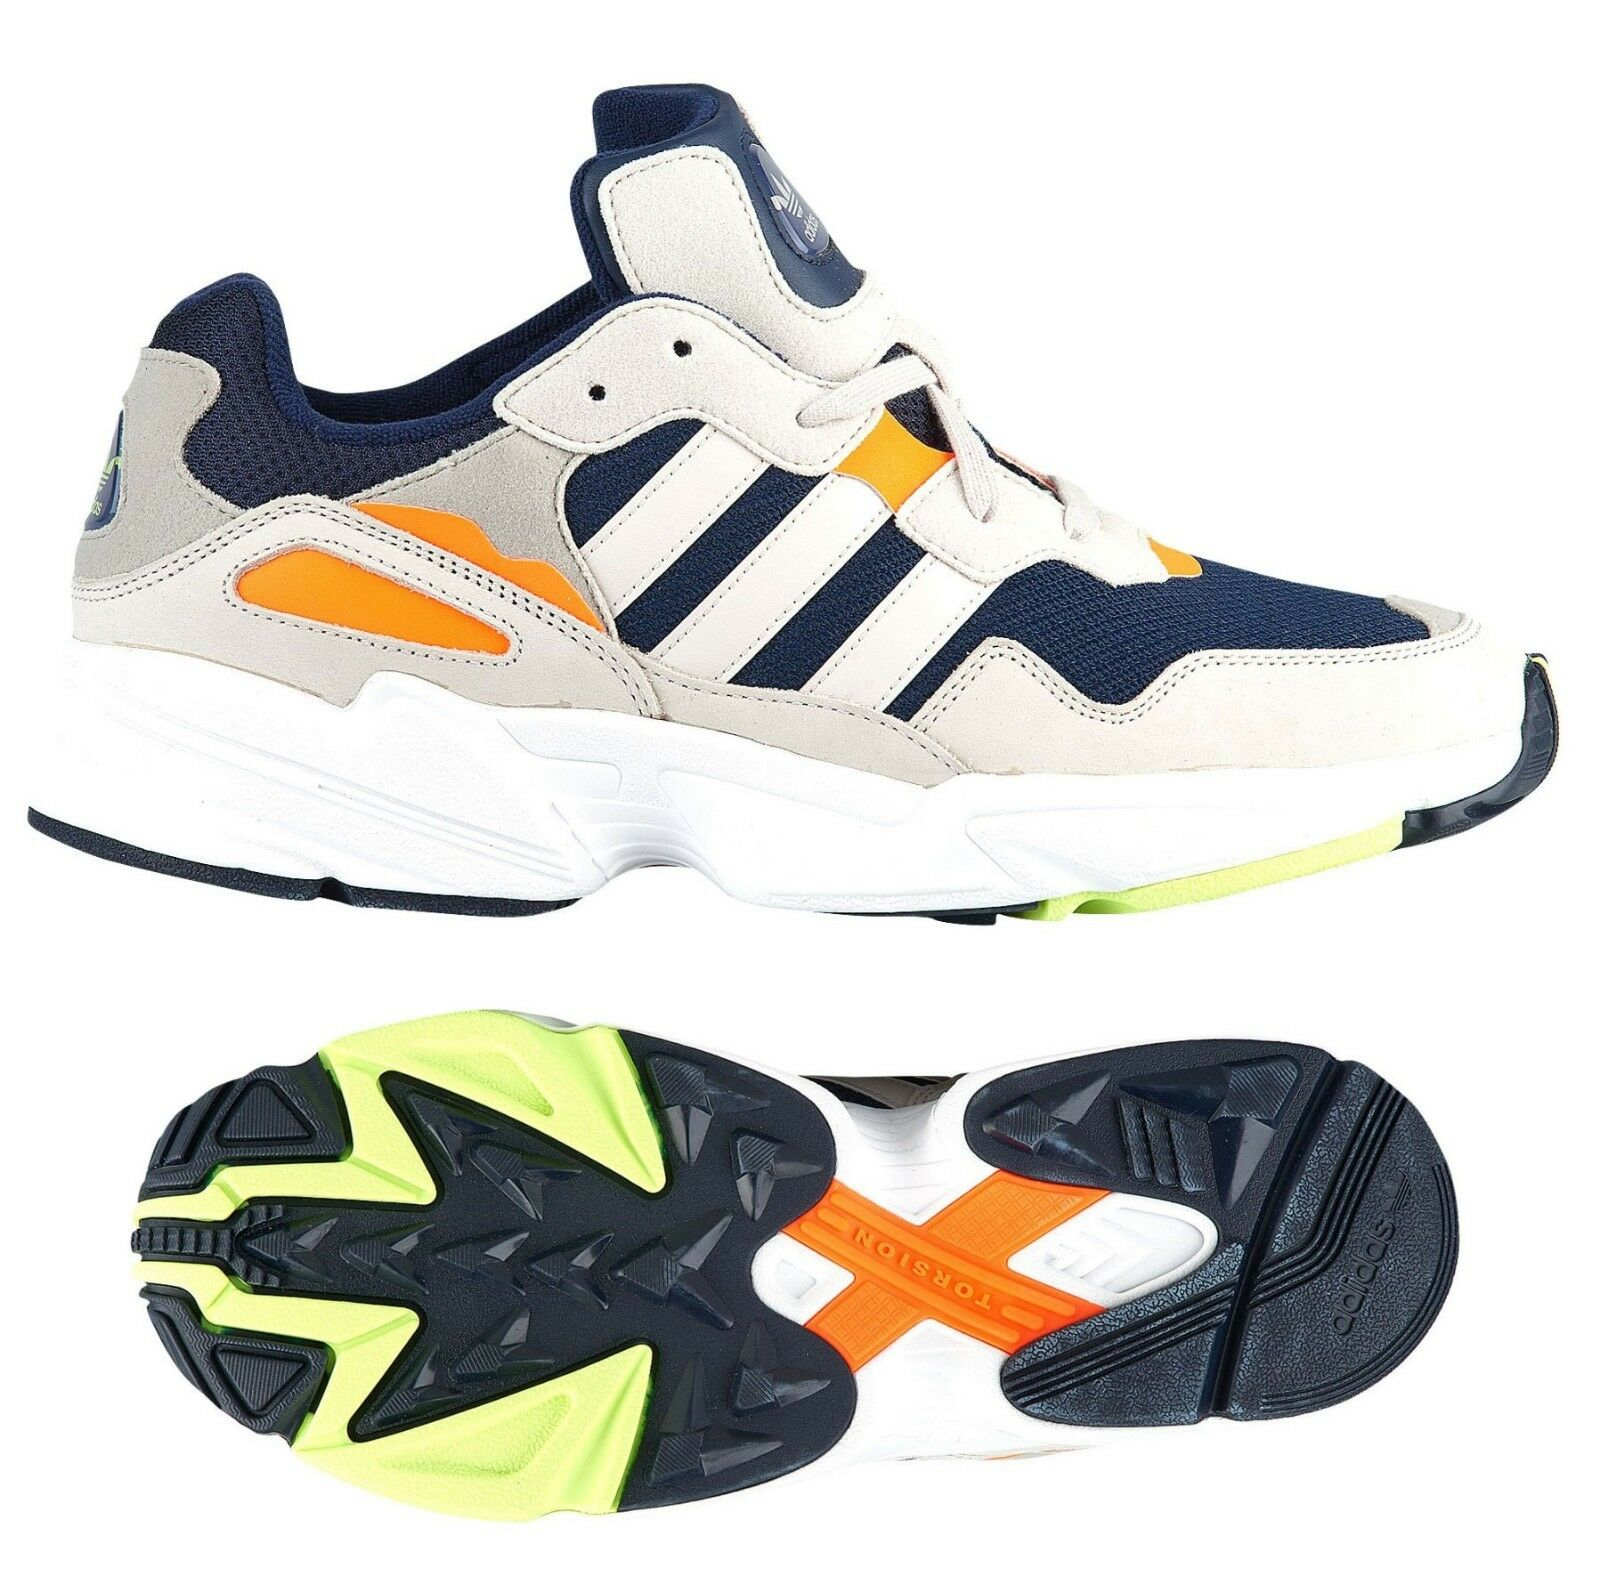 New ADIDAS Originals Yung 96 Sneaker Mens navy white all size